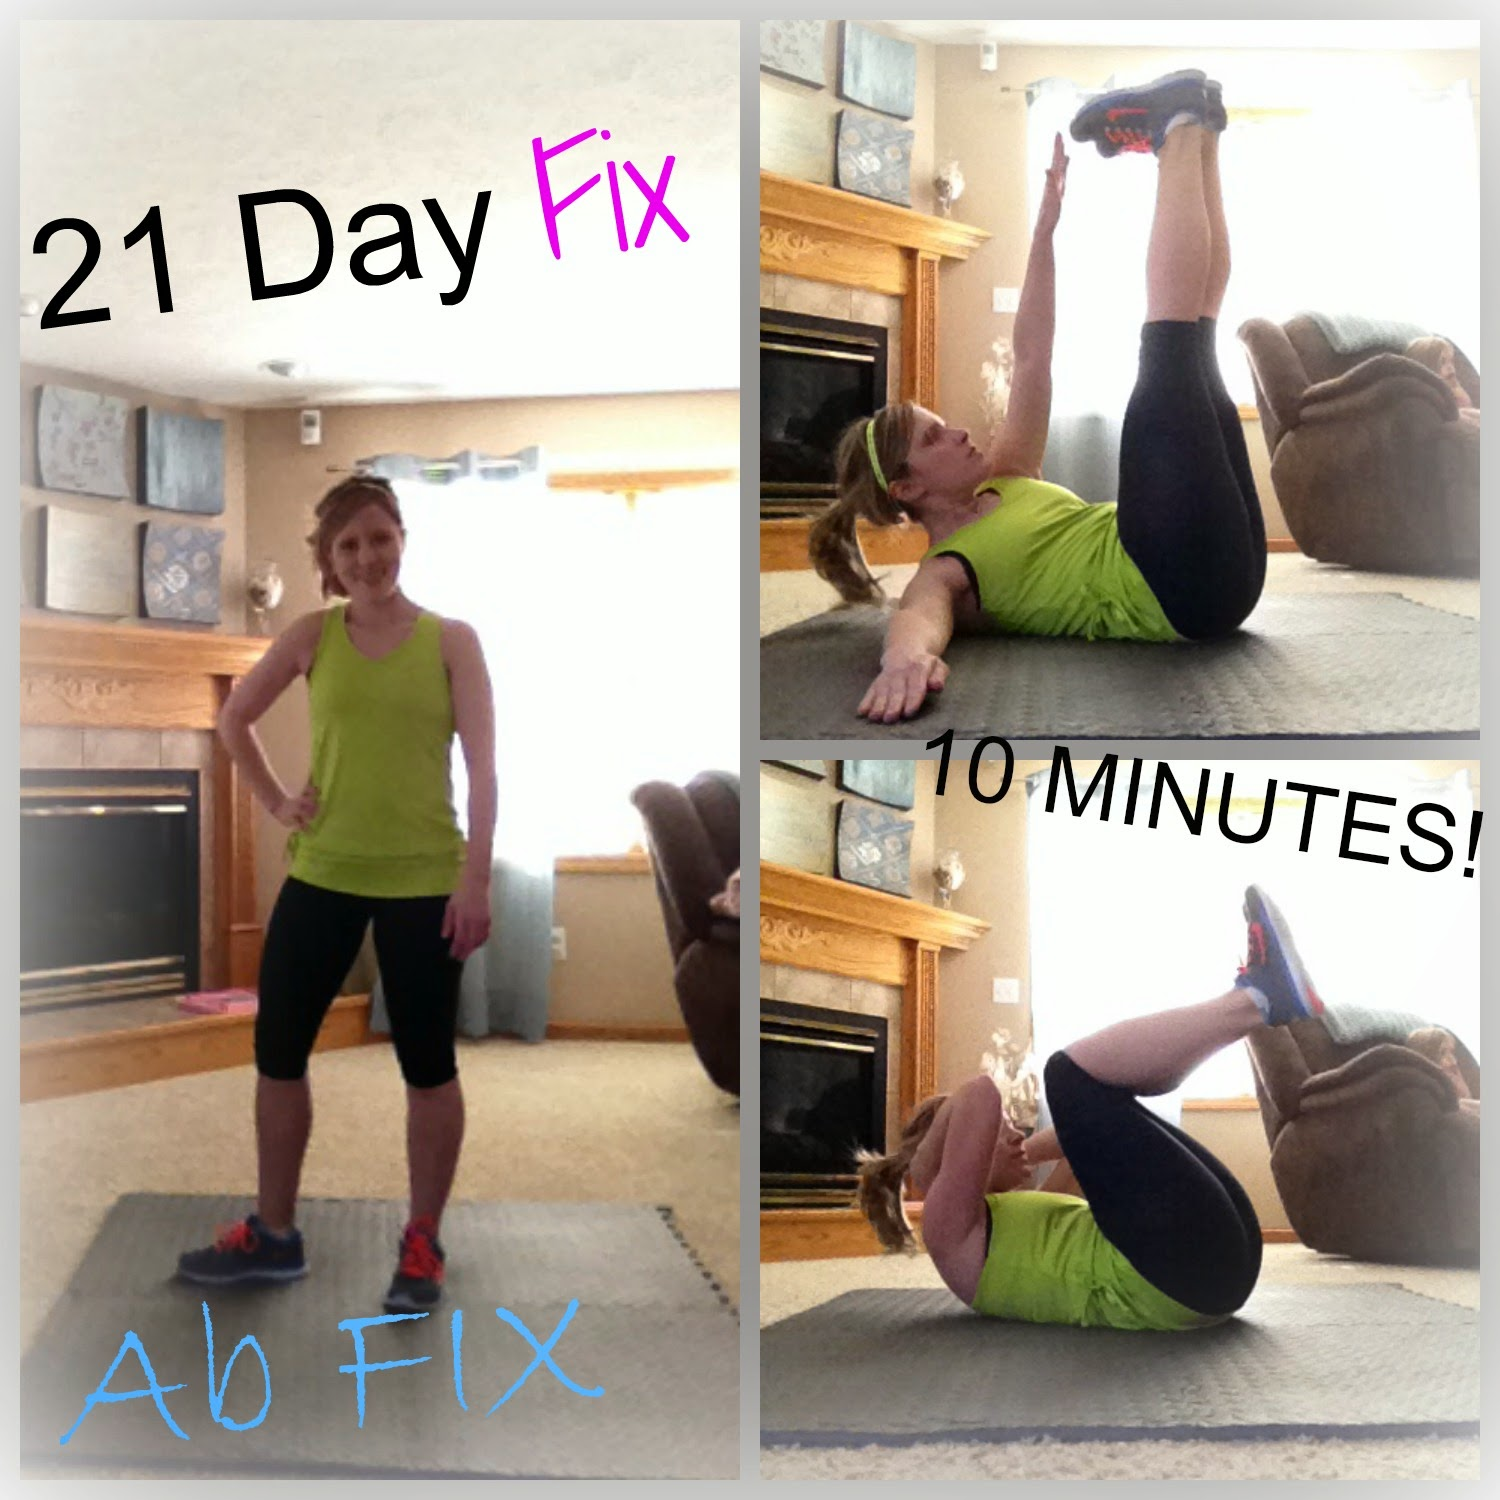 21 Day Fix Fitness Motivation